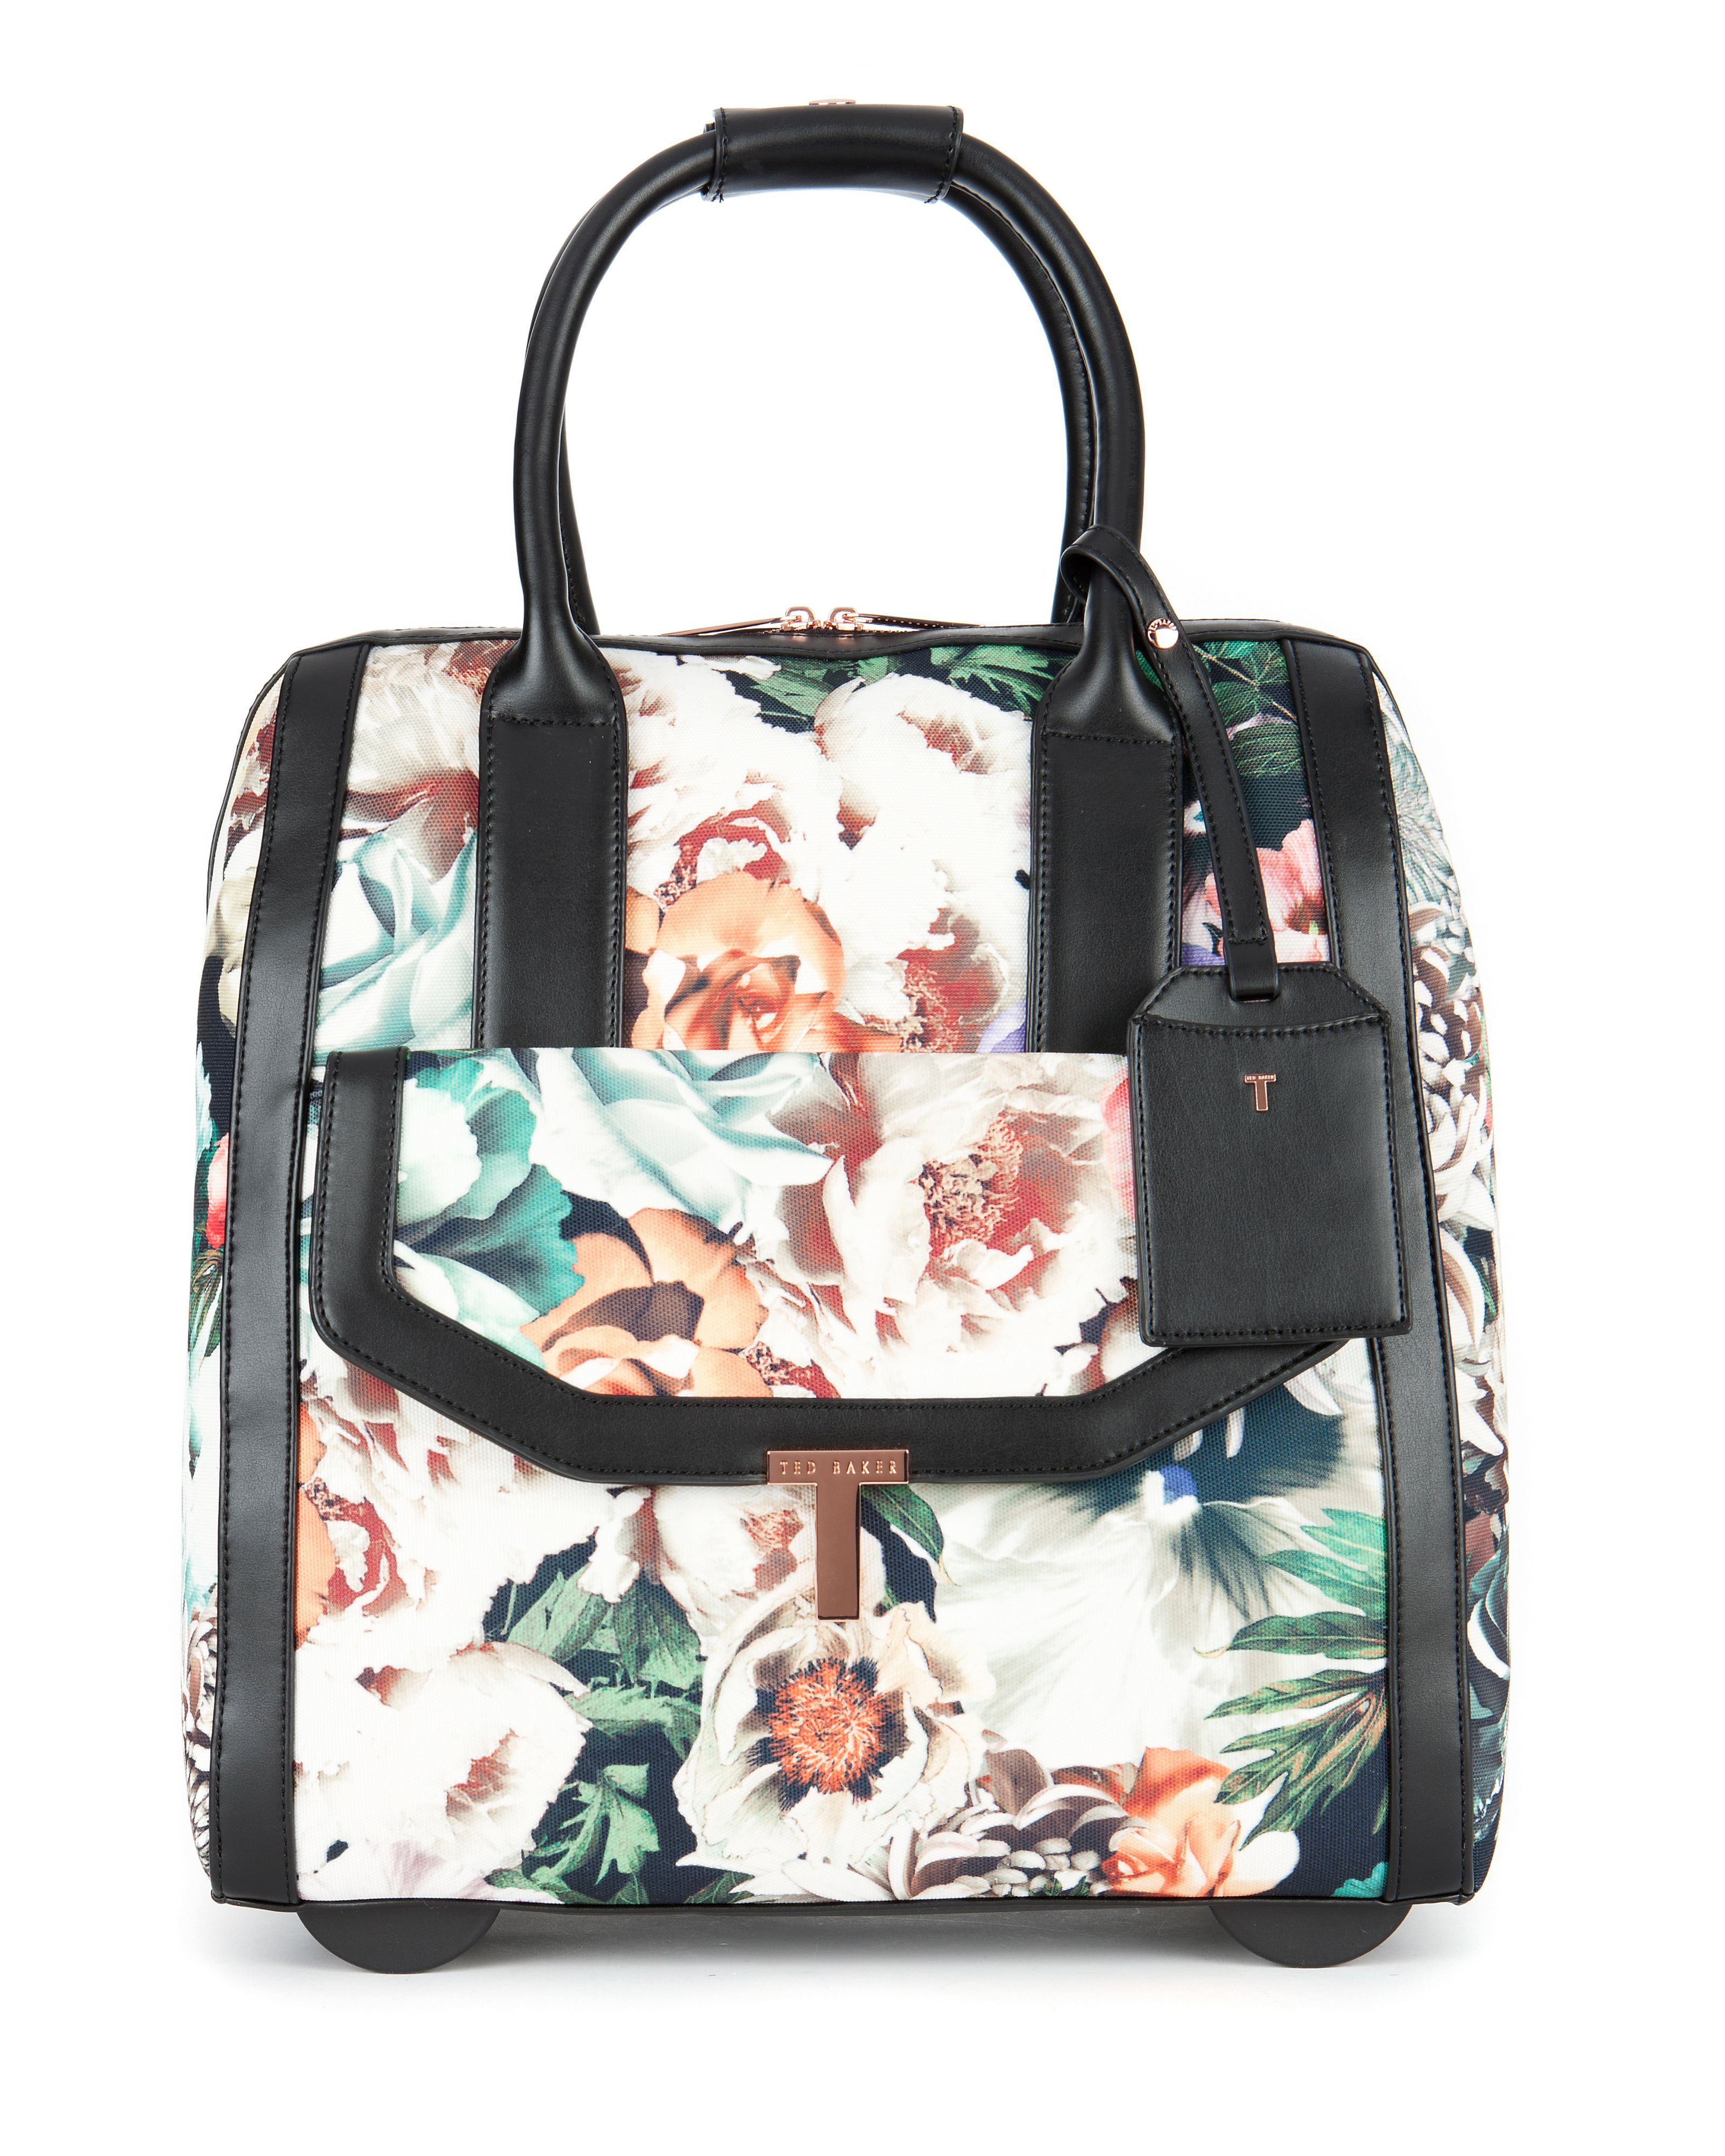 Taylah floral printed luggage